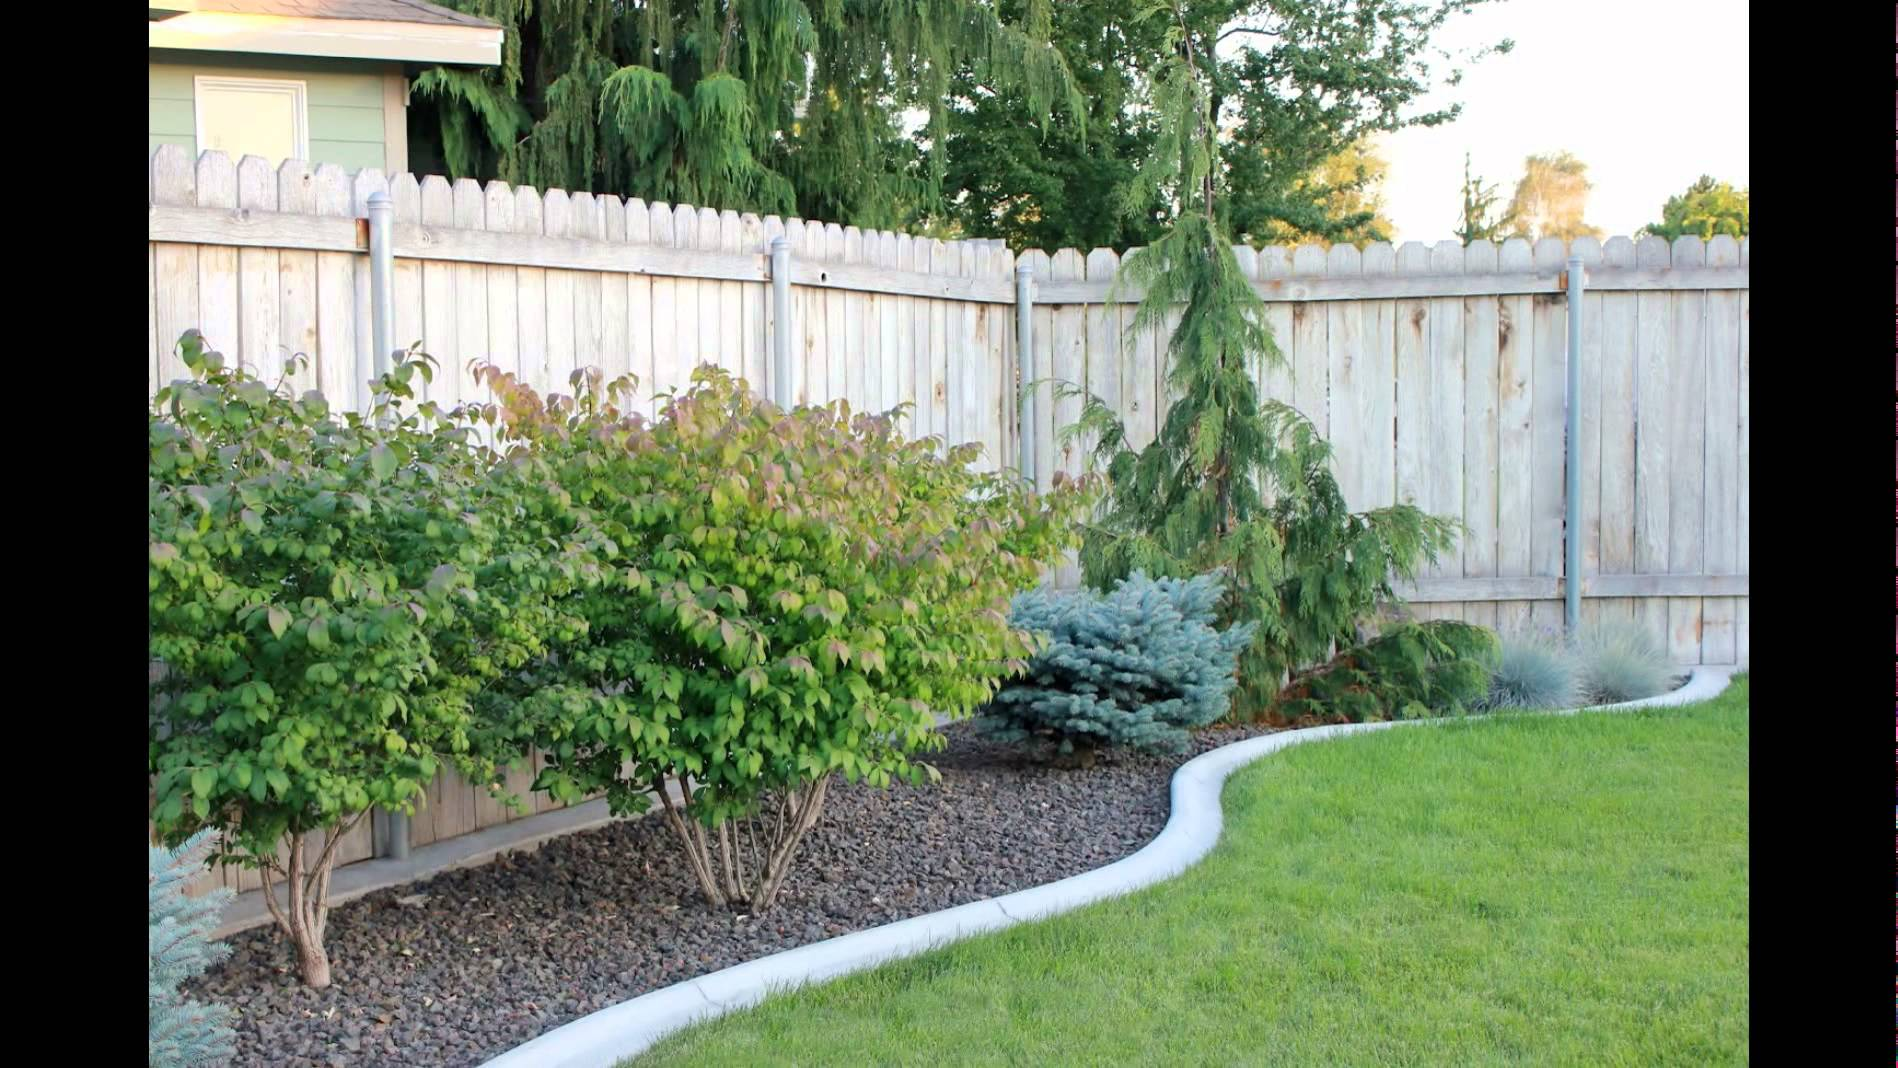 Backyard landscaping you can look backyard garden design you can look design my garden you can look garden landscaping ideas